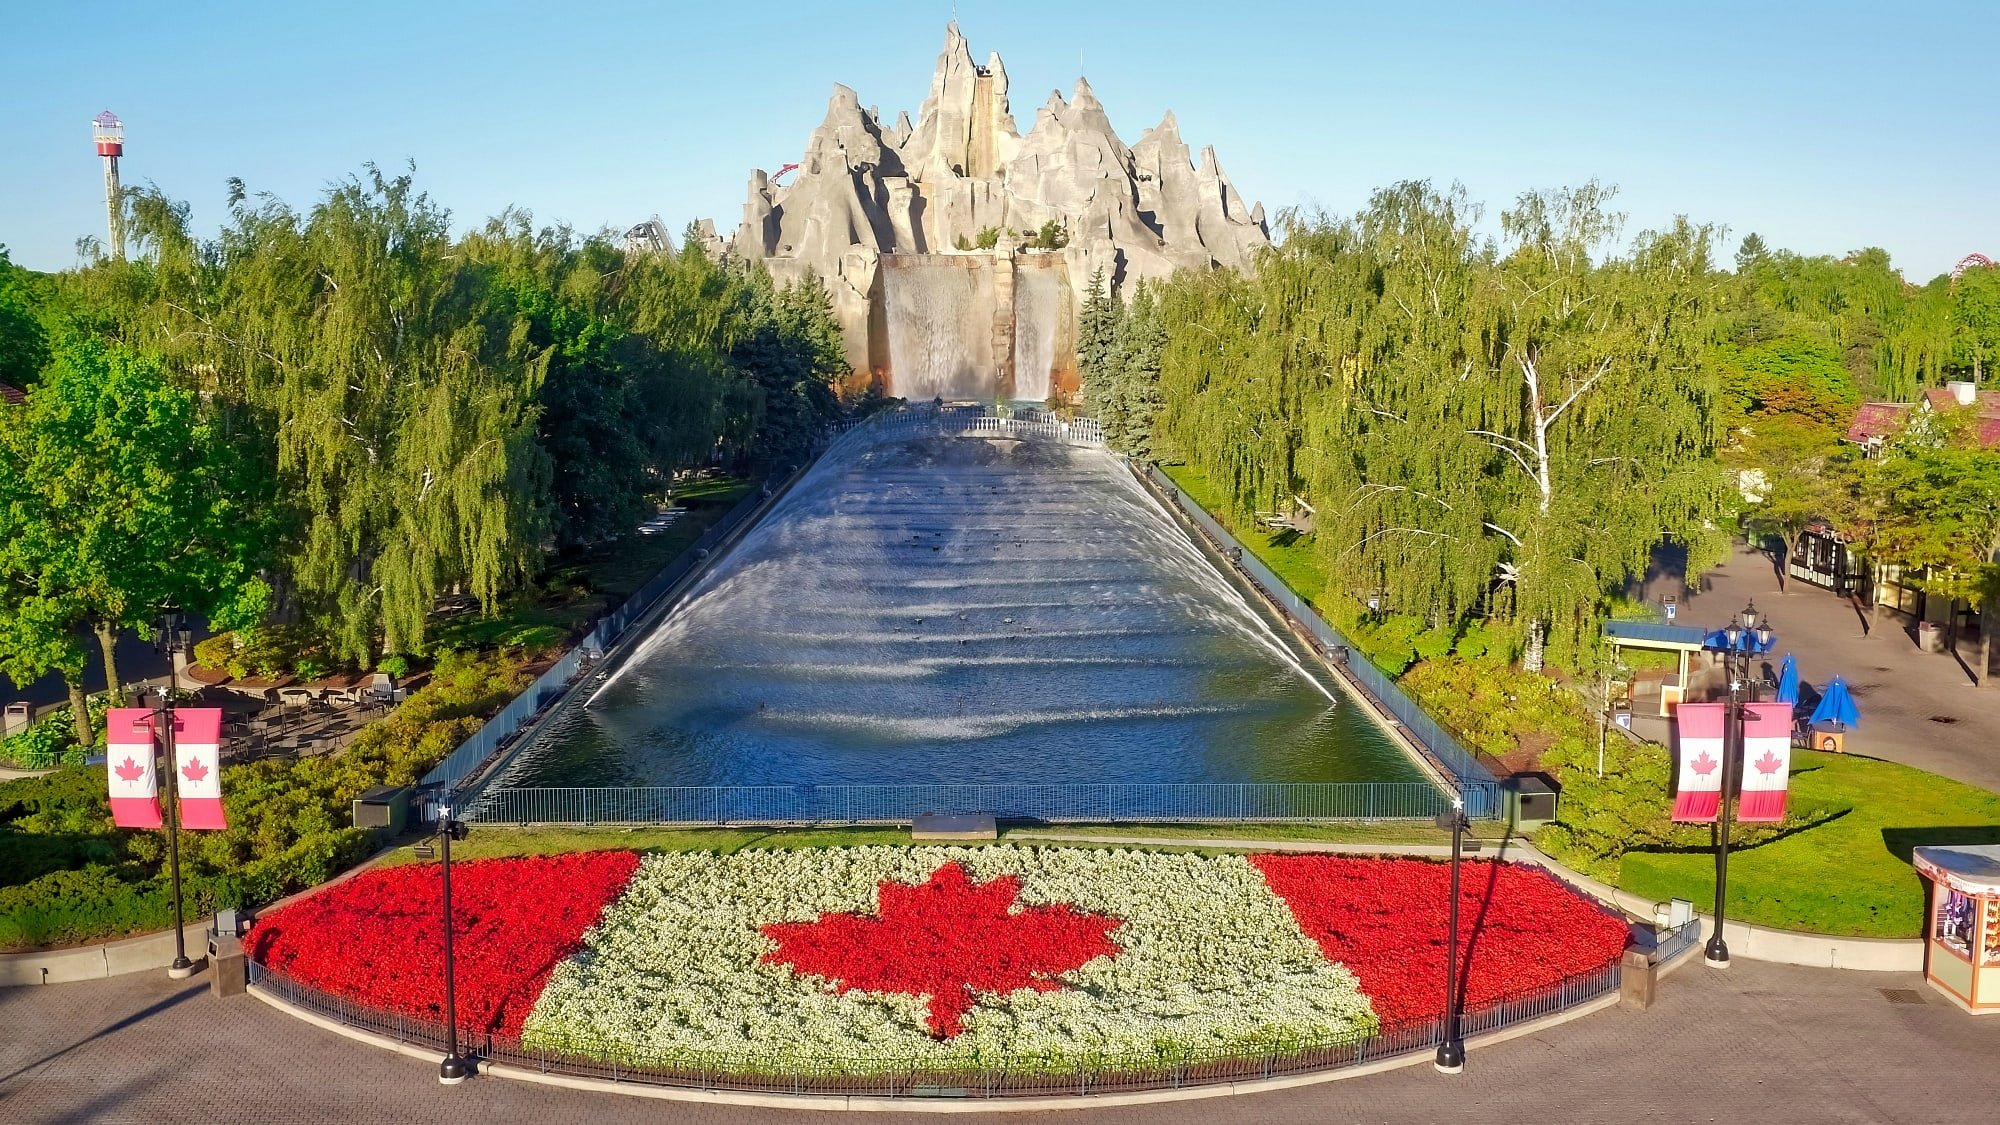 Map Of Canadas Wonderland 2017.Tips For Visiting Canada S Wonderland Theme Park Travelmamas Com